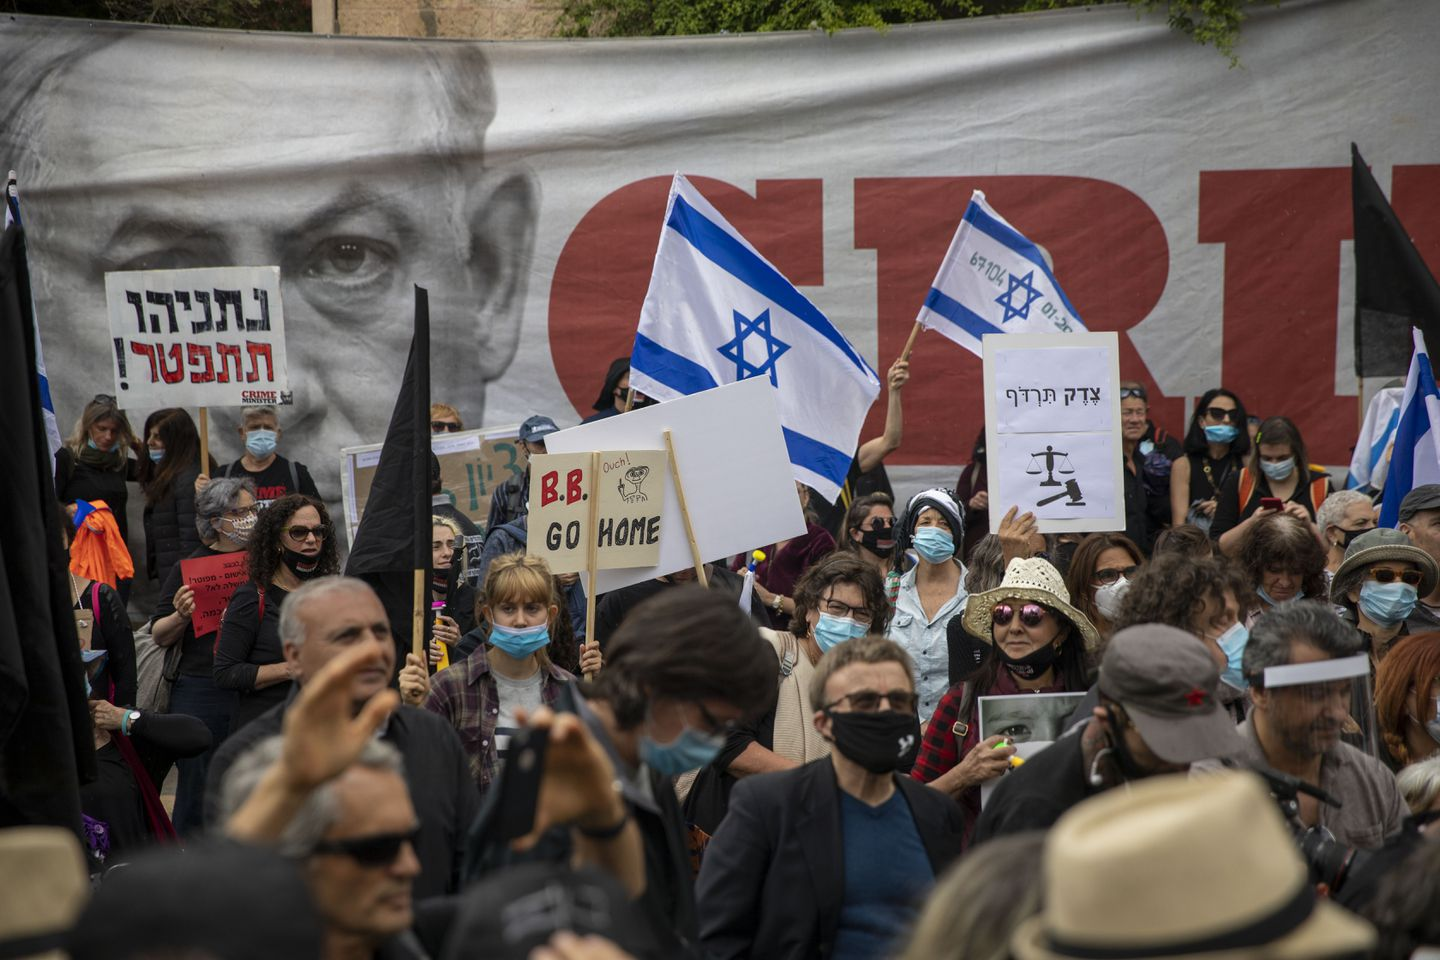 Protesters demonstrating against Israel's Prime Minister Benjamin Netanyahu held flags and banners outside his residence in Jerusalem last month.